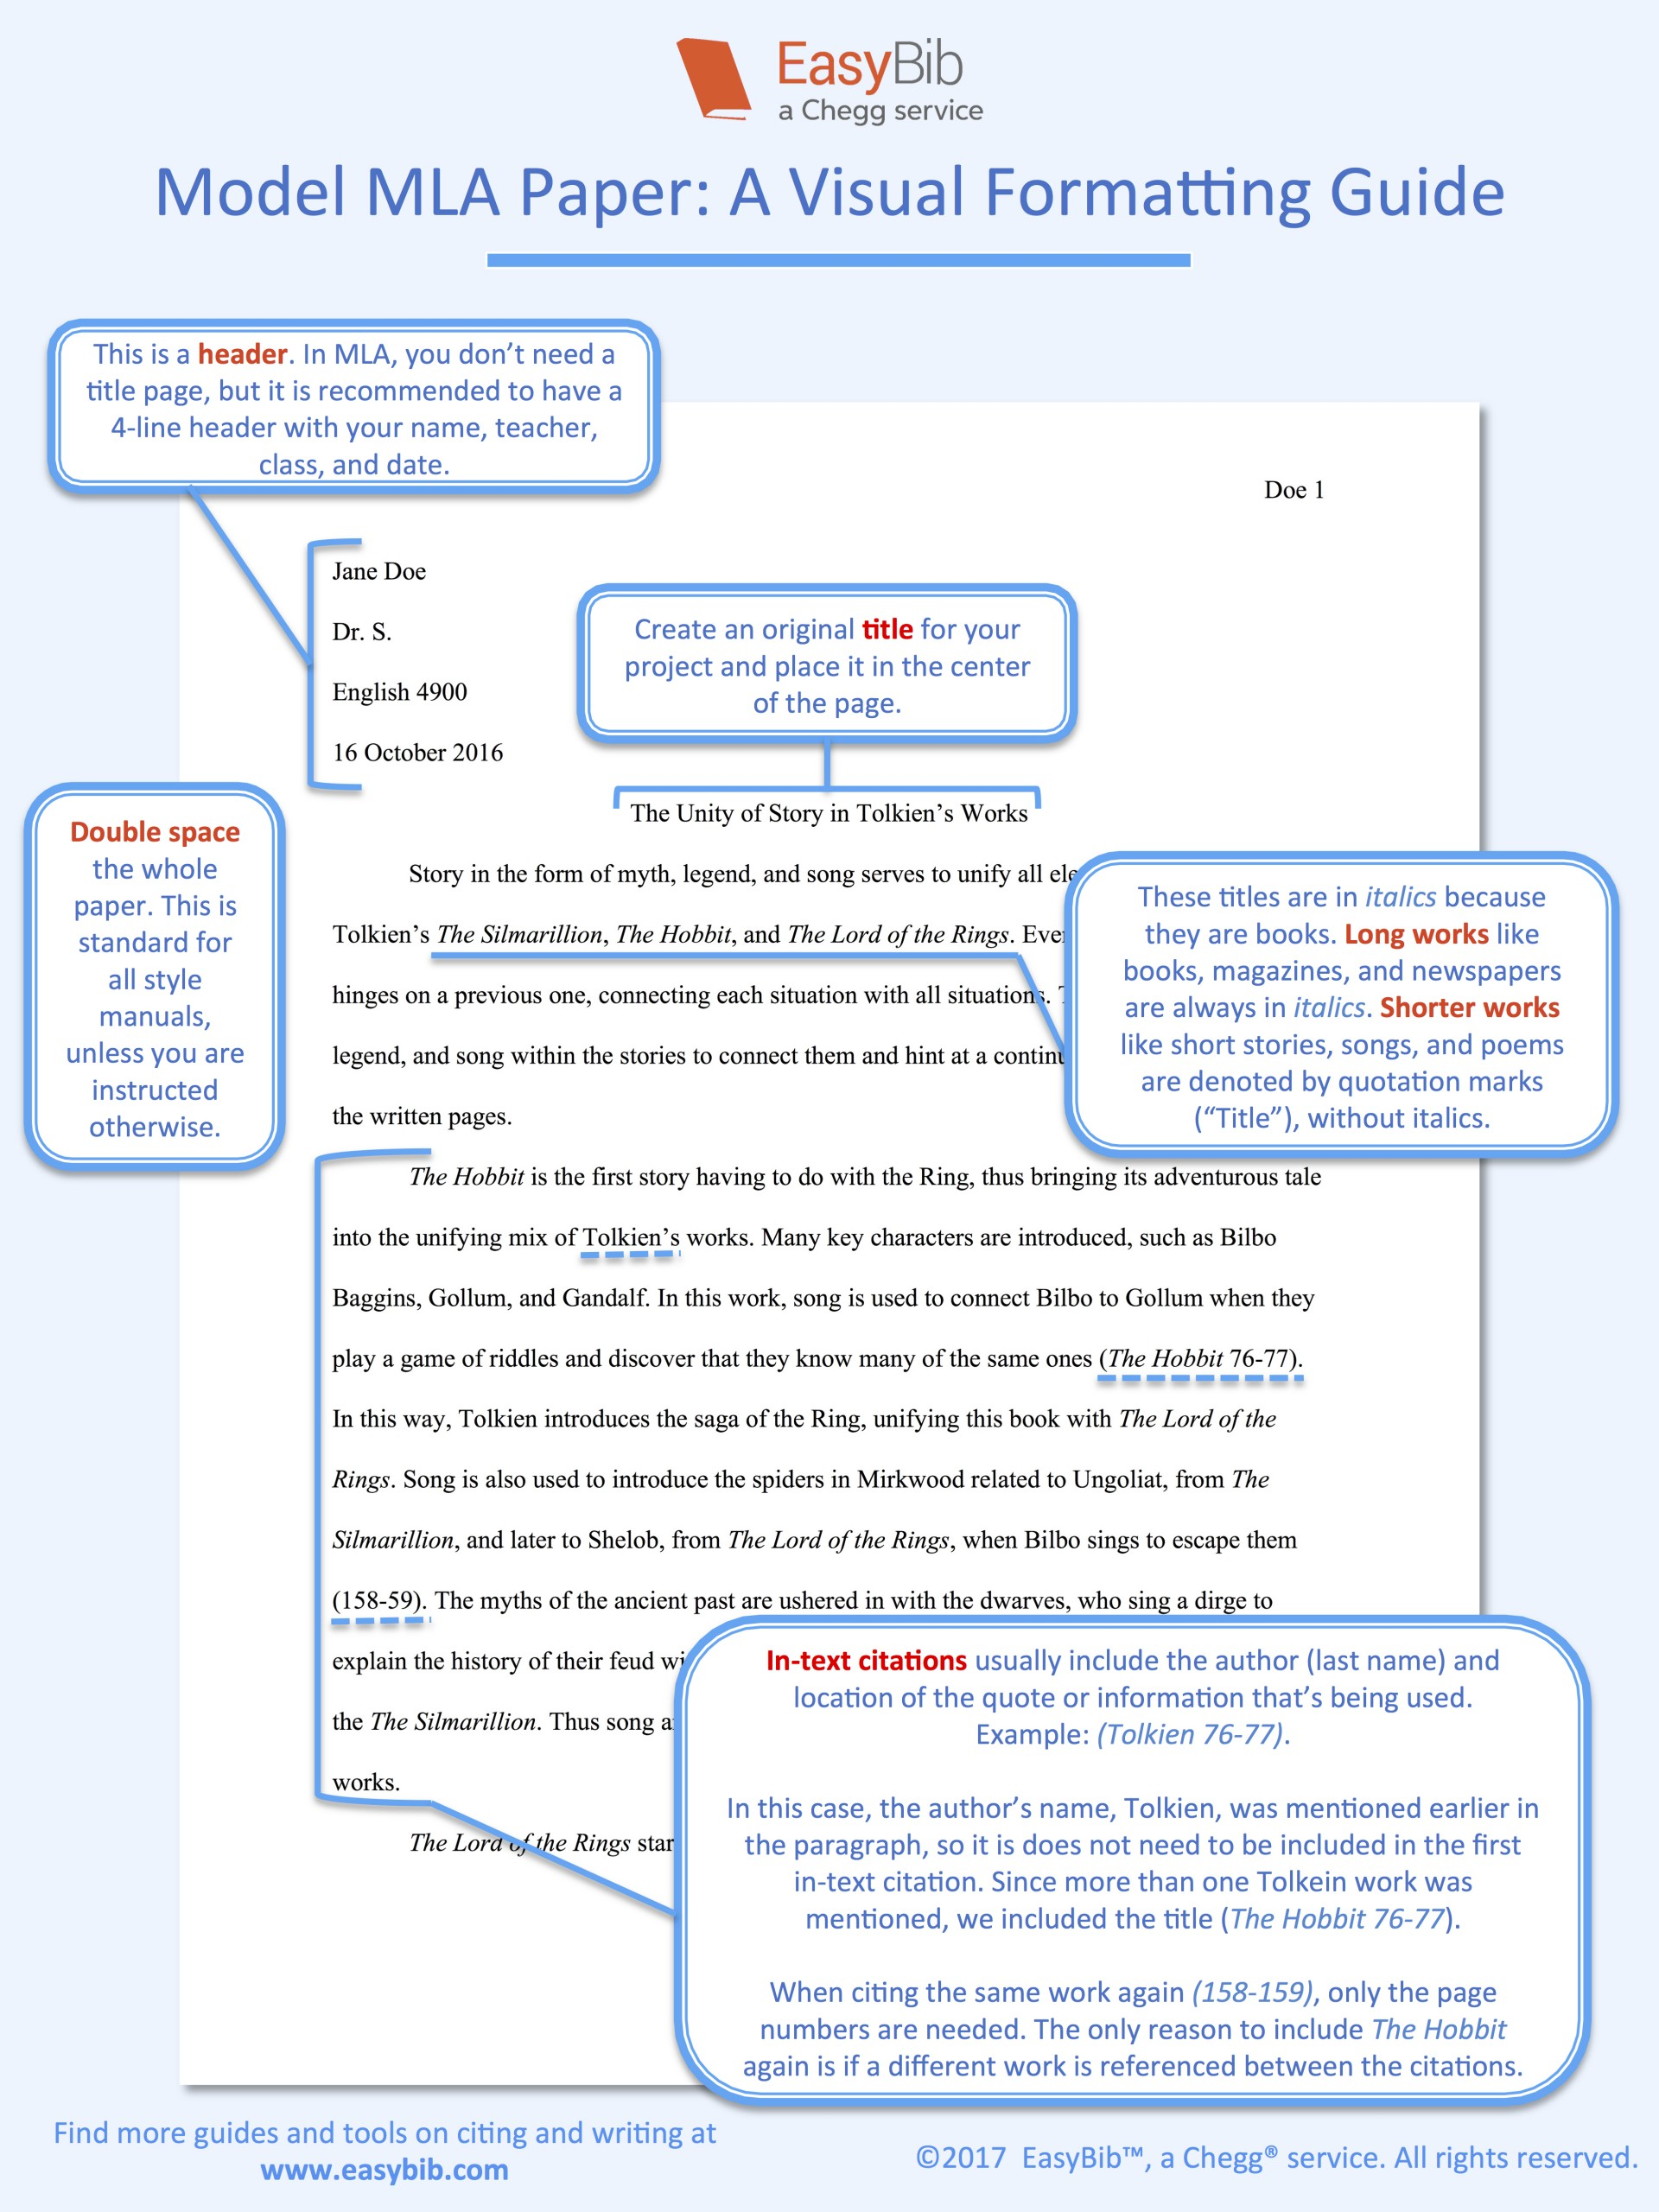 013 Model Mla Paper Citing Impressive A Research Citations In How To Cite 8 Using Format 1920